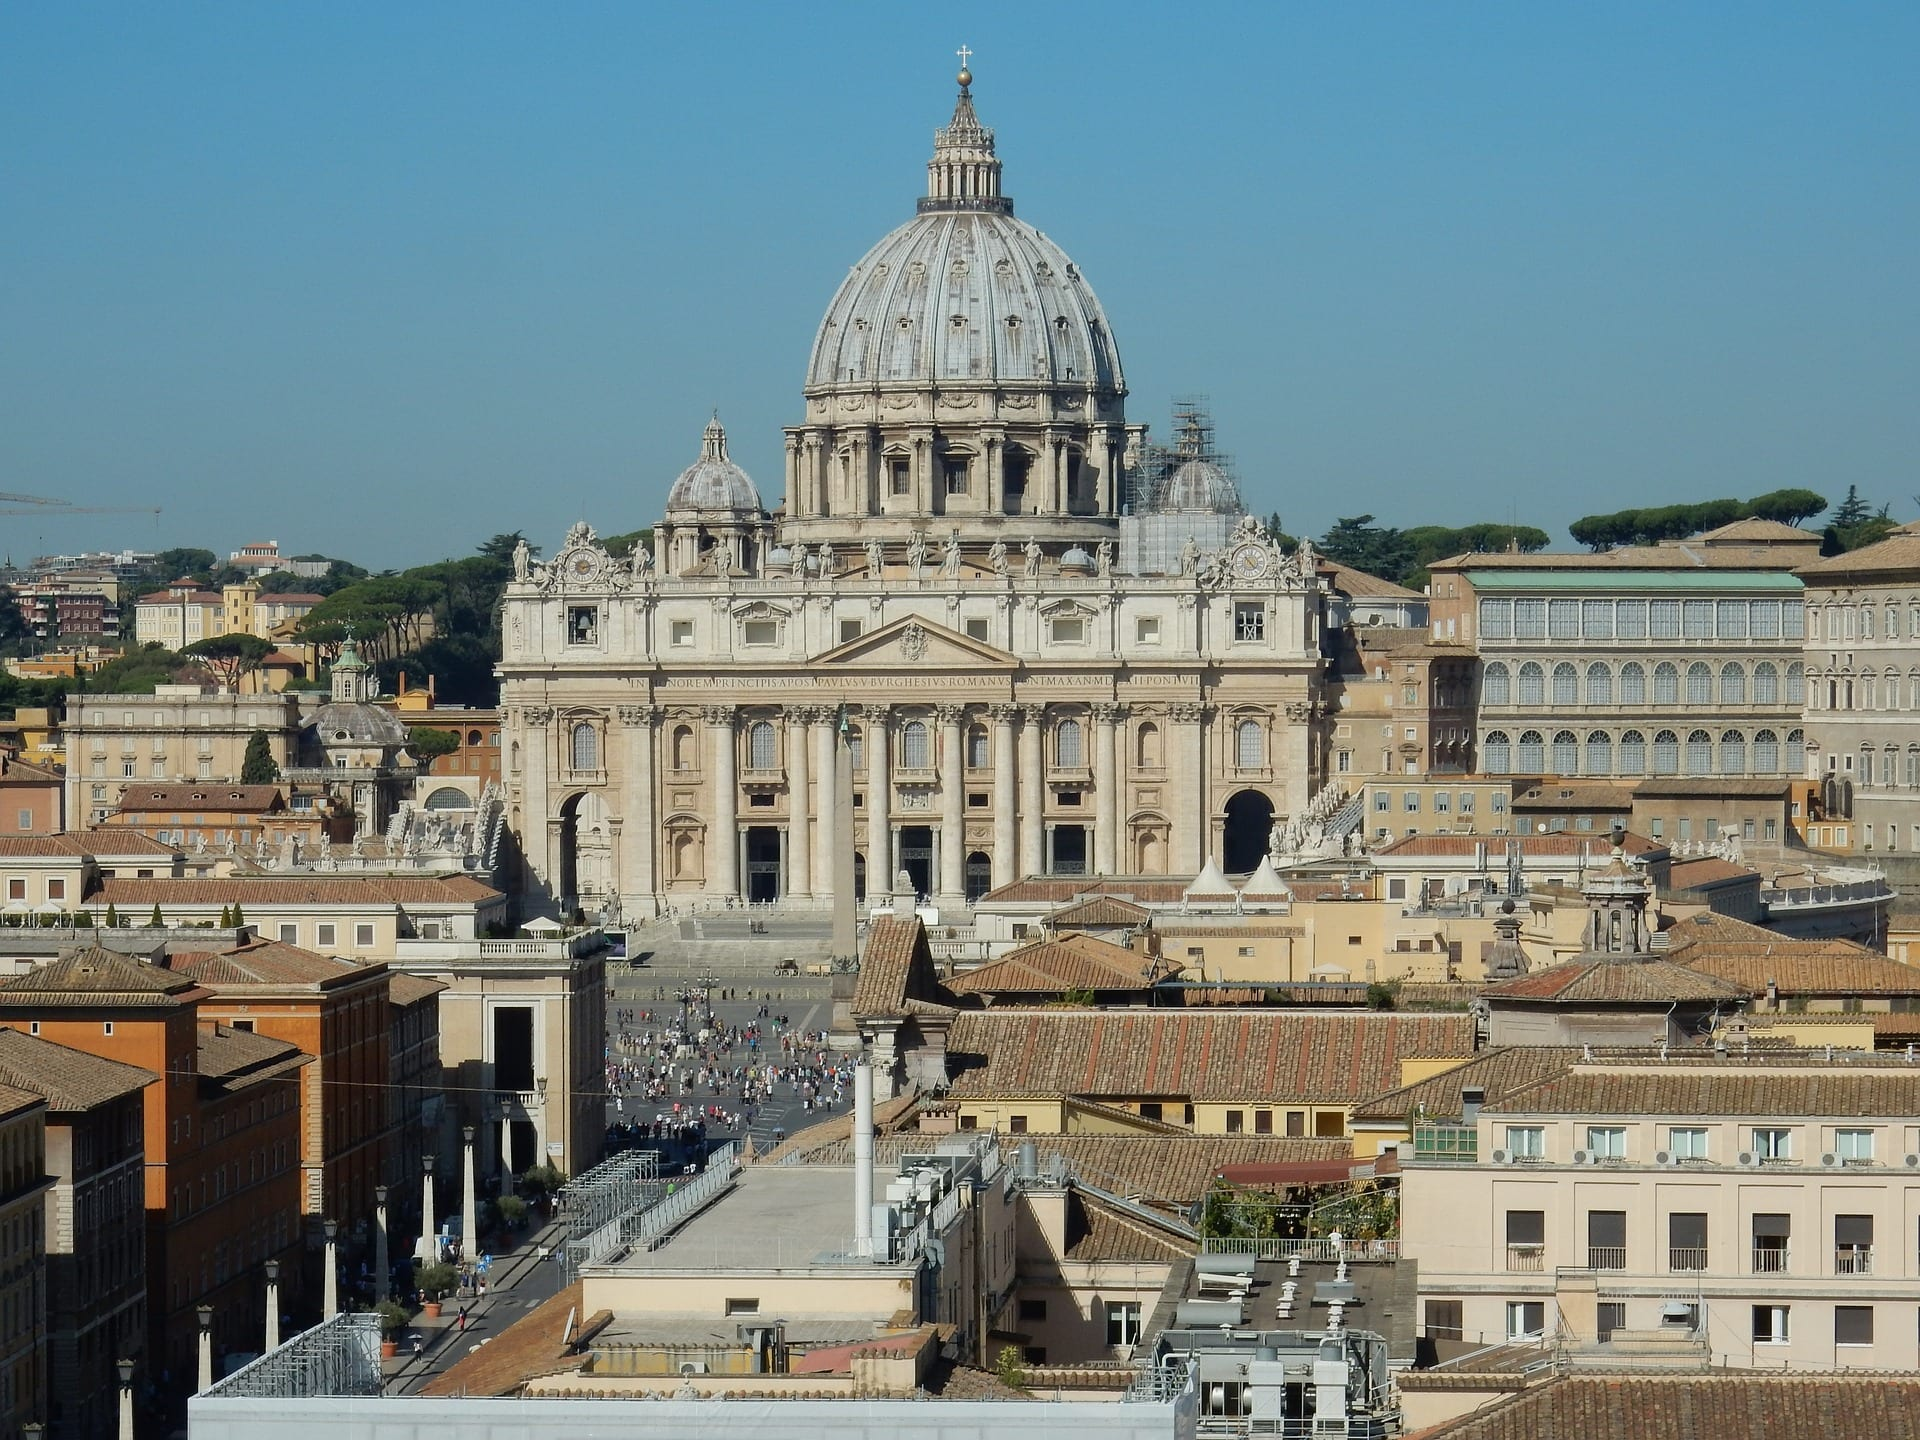 Things to see in Rome include St Peter's Basilica